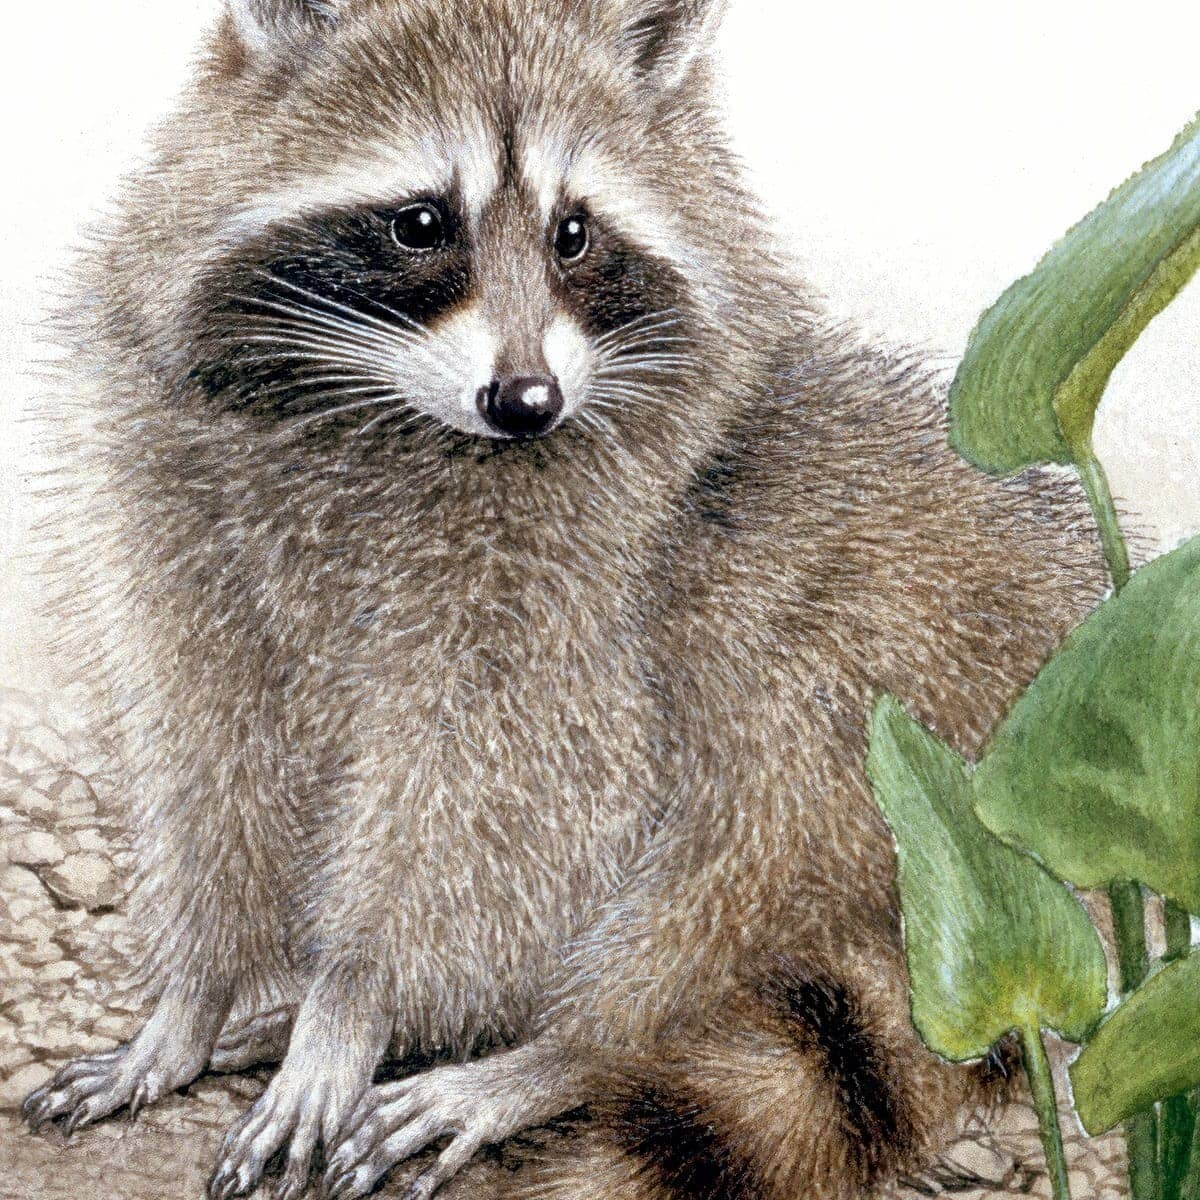 Raccoon Baby - Art Print by Glen Loates from the Glen Loates Store